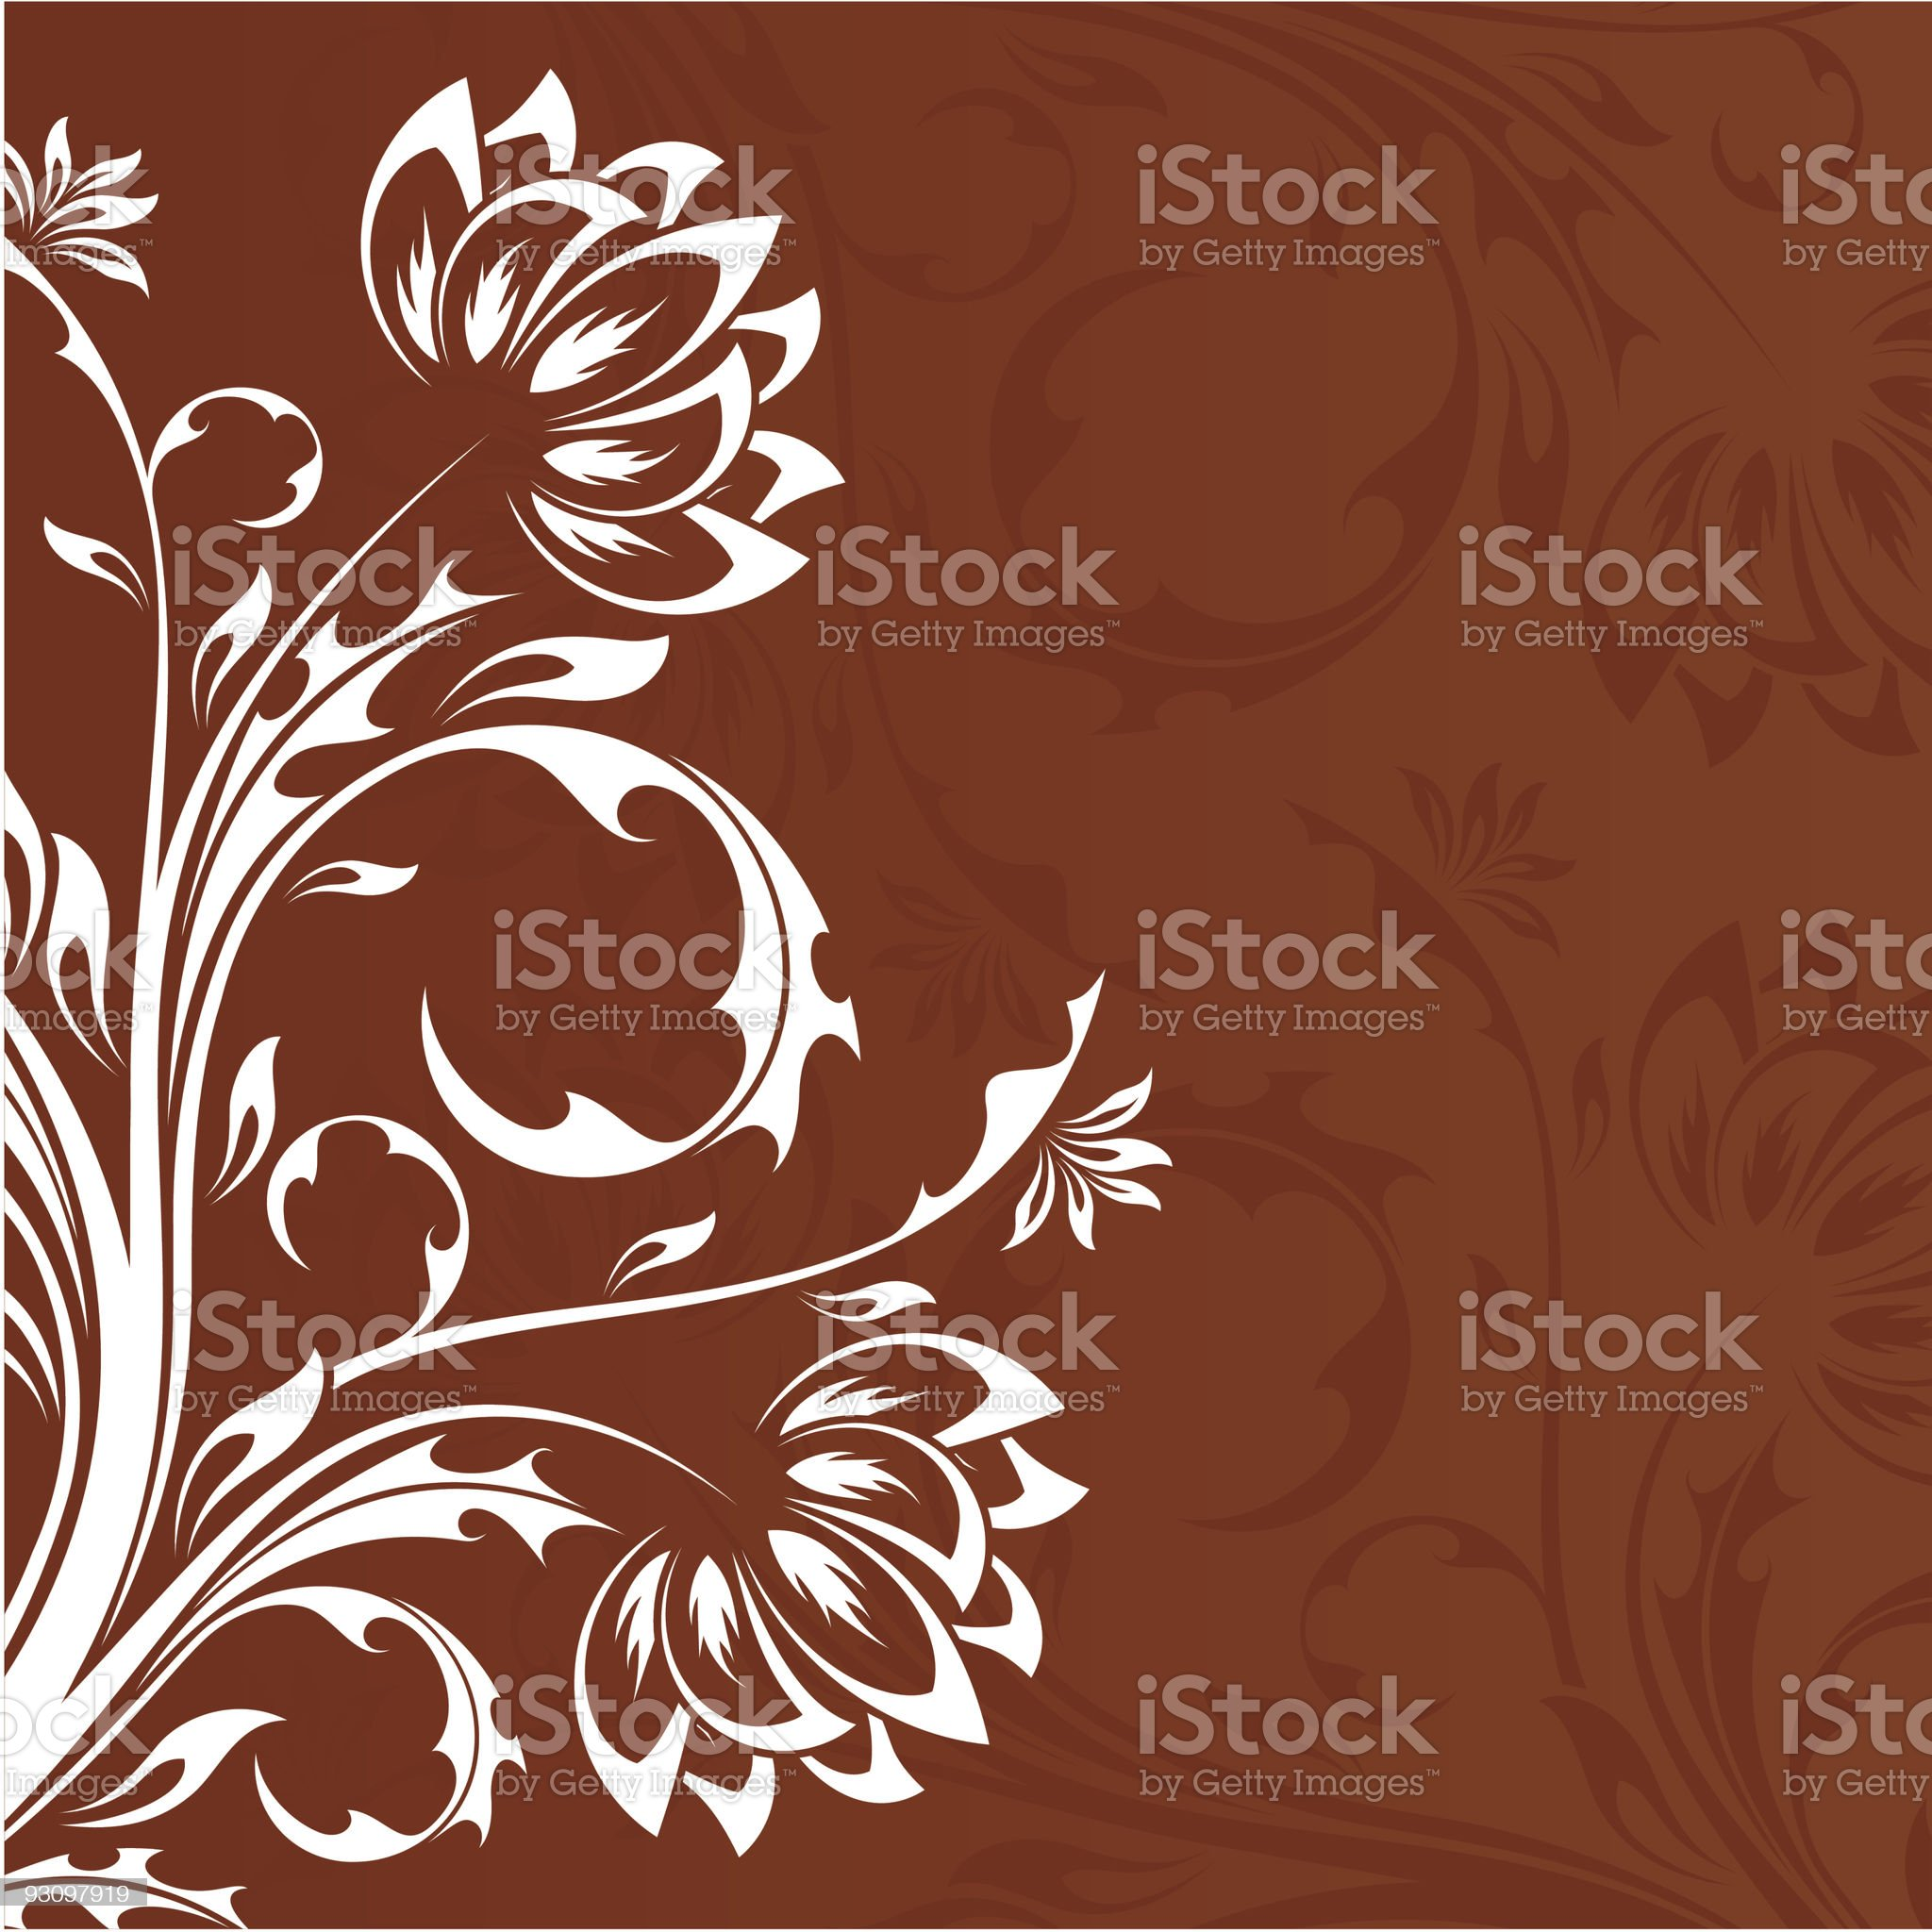 Abstract floral background royalty-free stock vector art